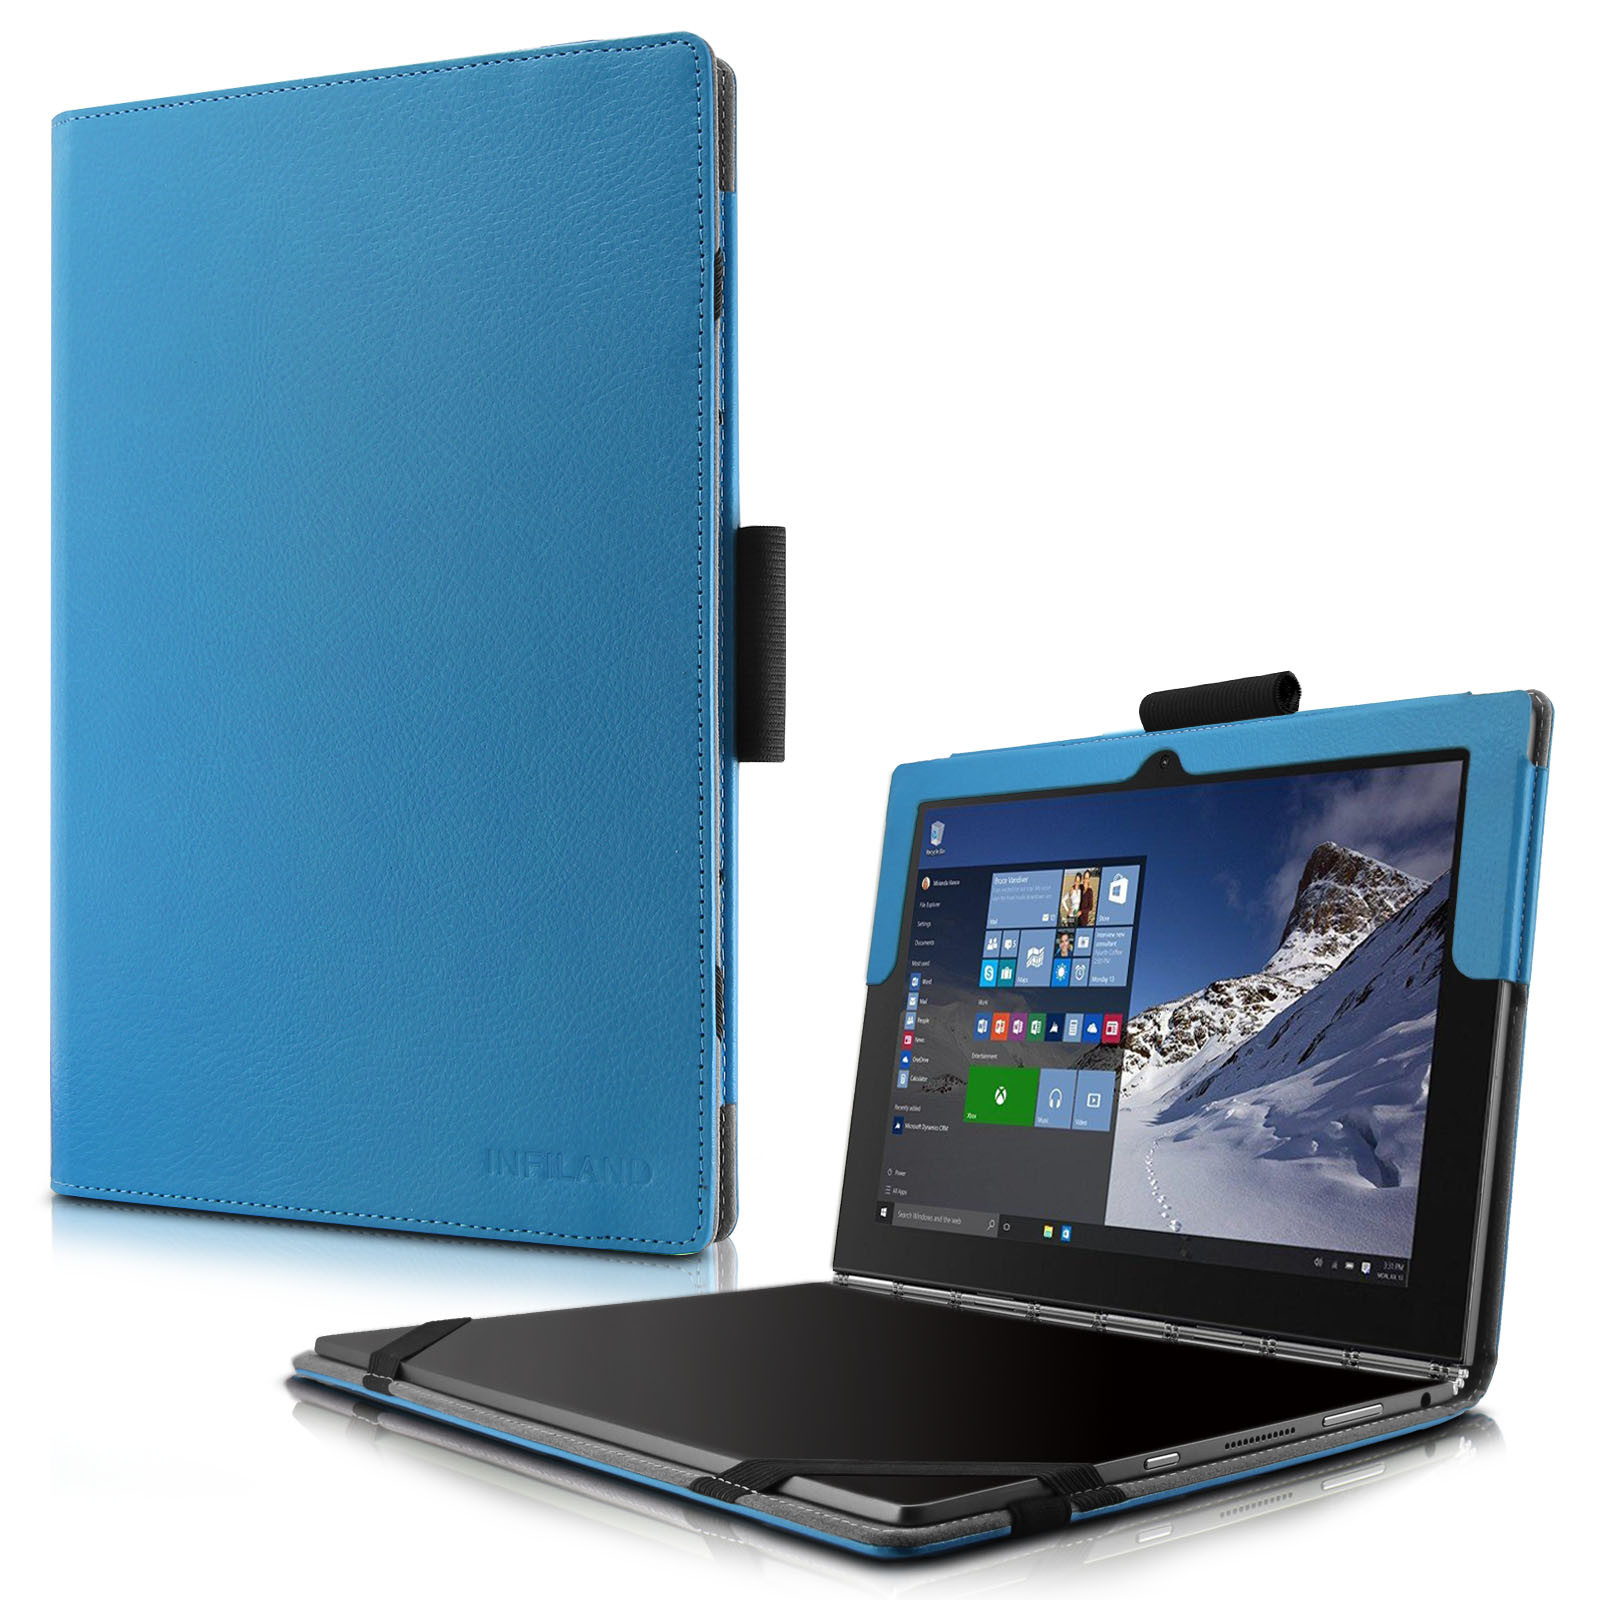 "Infiland Lenovo Yoga Book Case, Folio PU Leather Stand Cover For Lenovo Yoga Book WiFi 10.1"" 2-in-1 Tablet PC (Android and Windows Version), Blue"